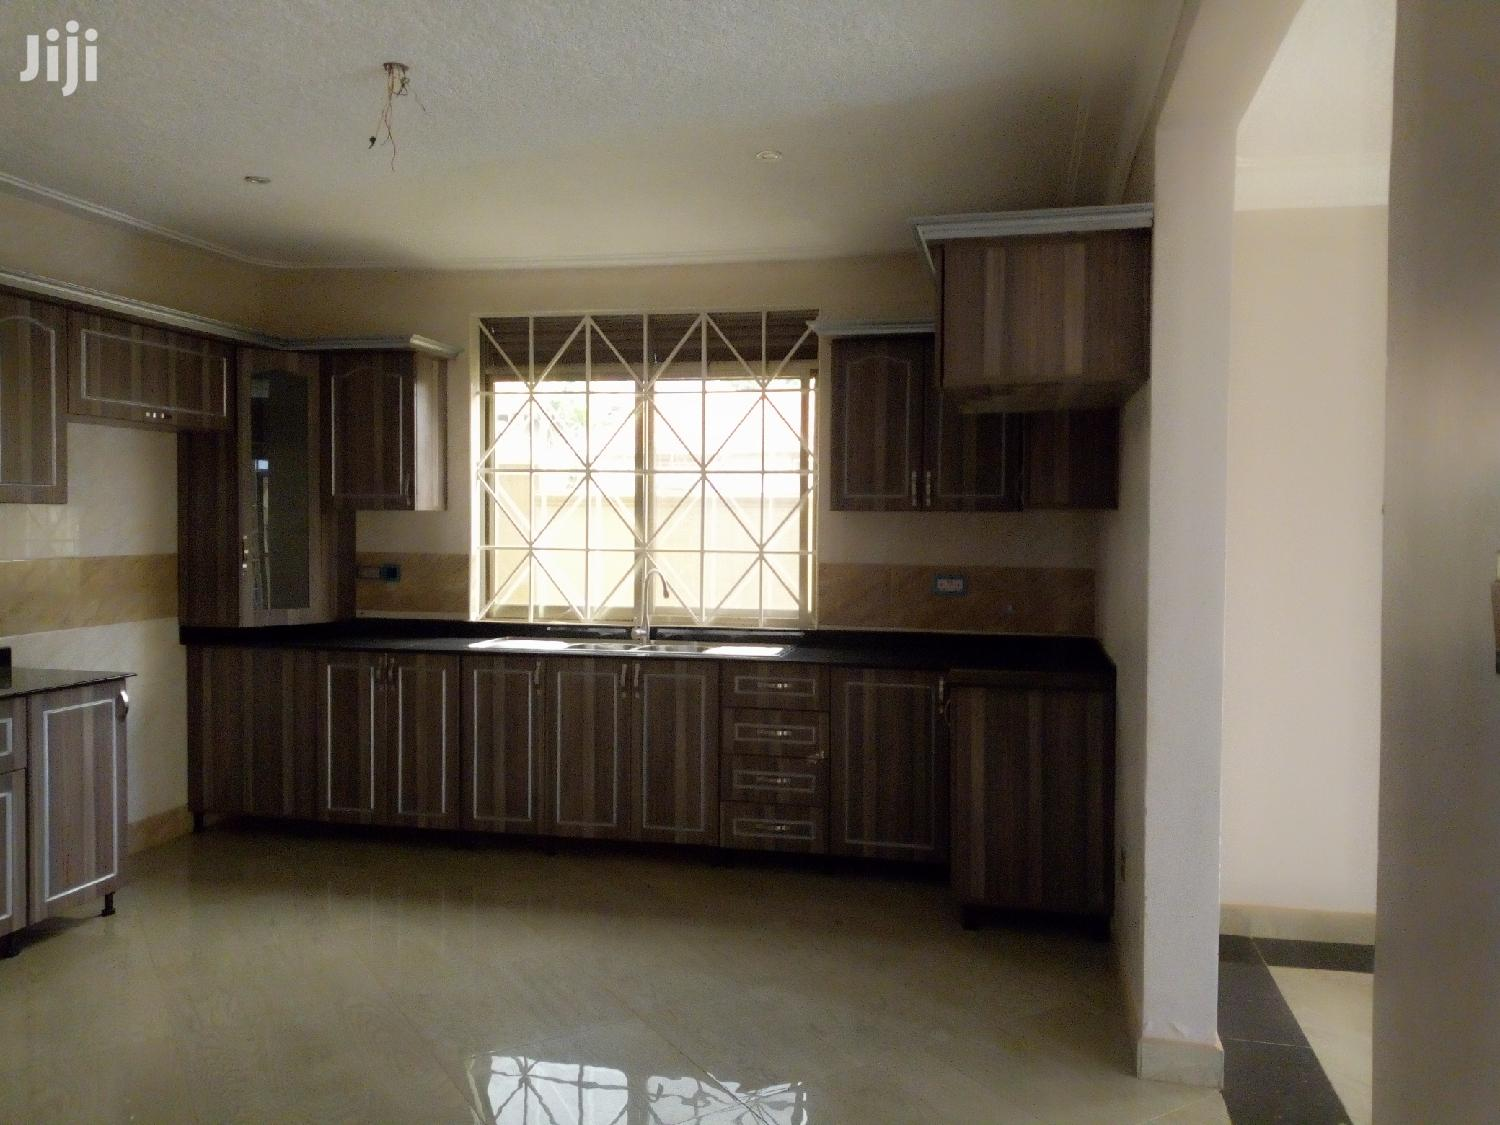 Archive: House for Rent Apartment Standalone in Kira